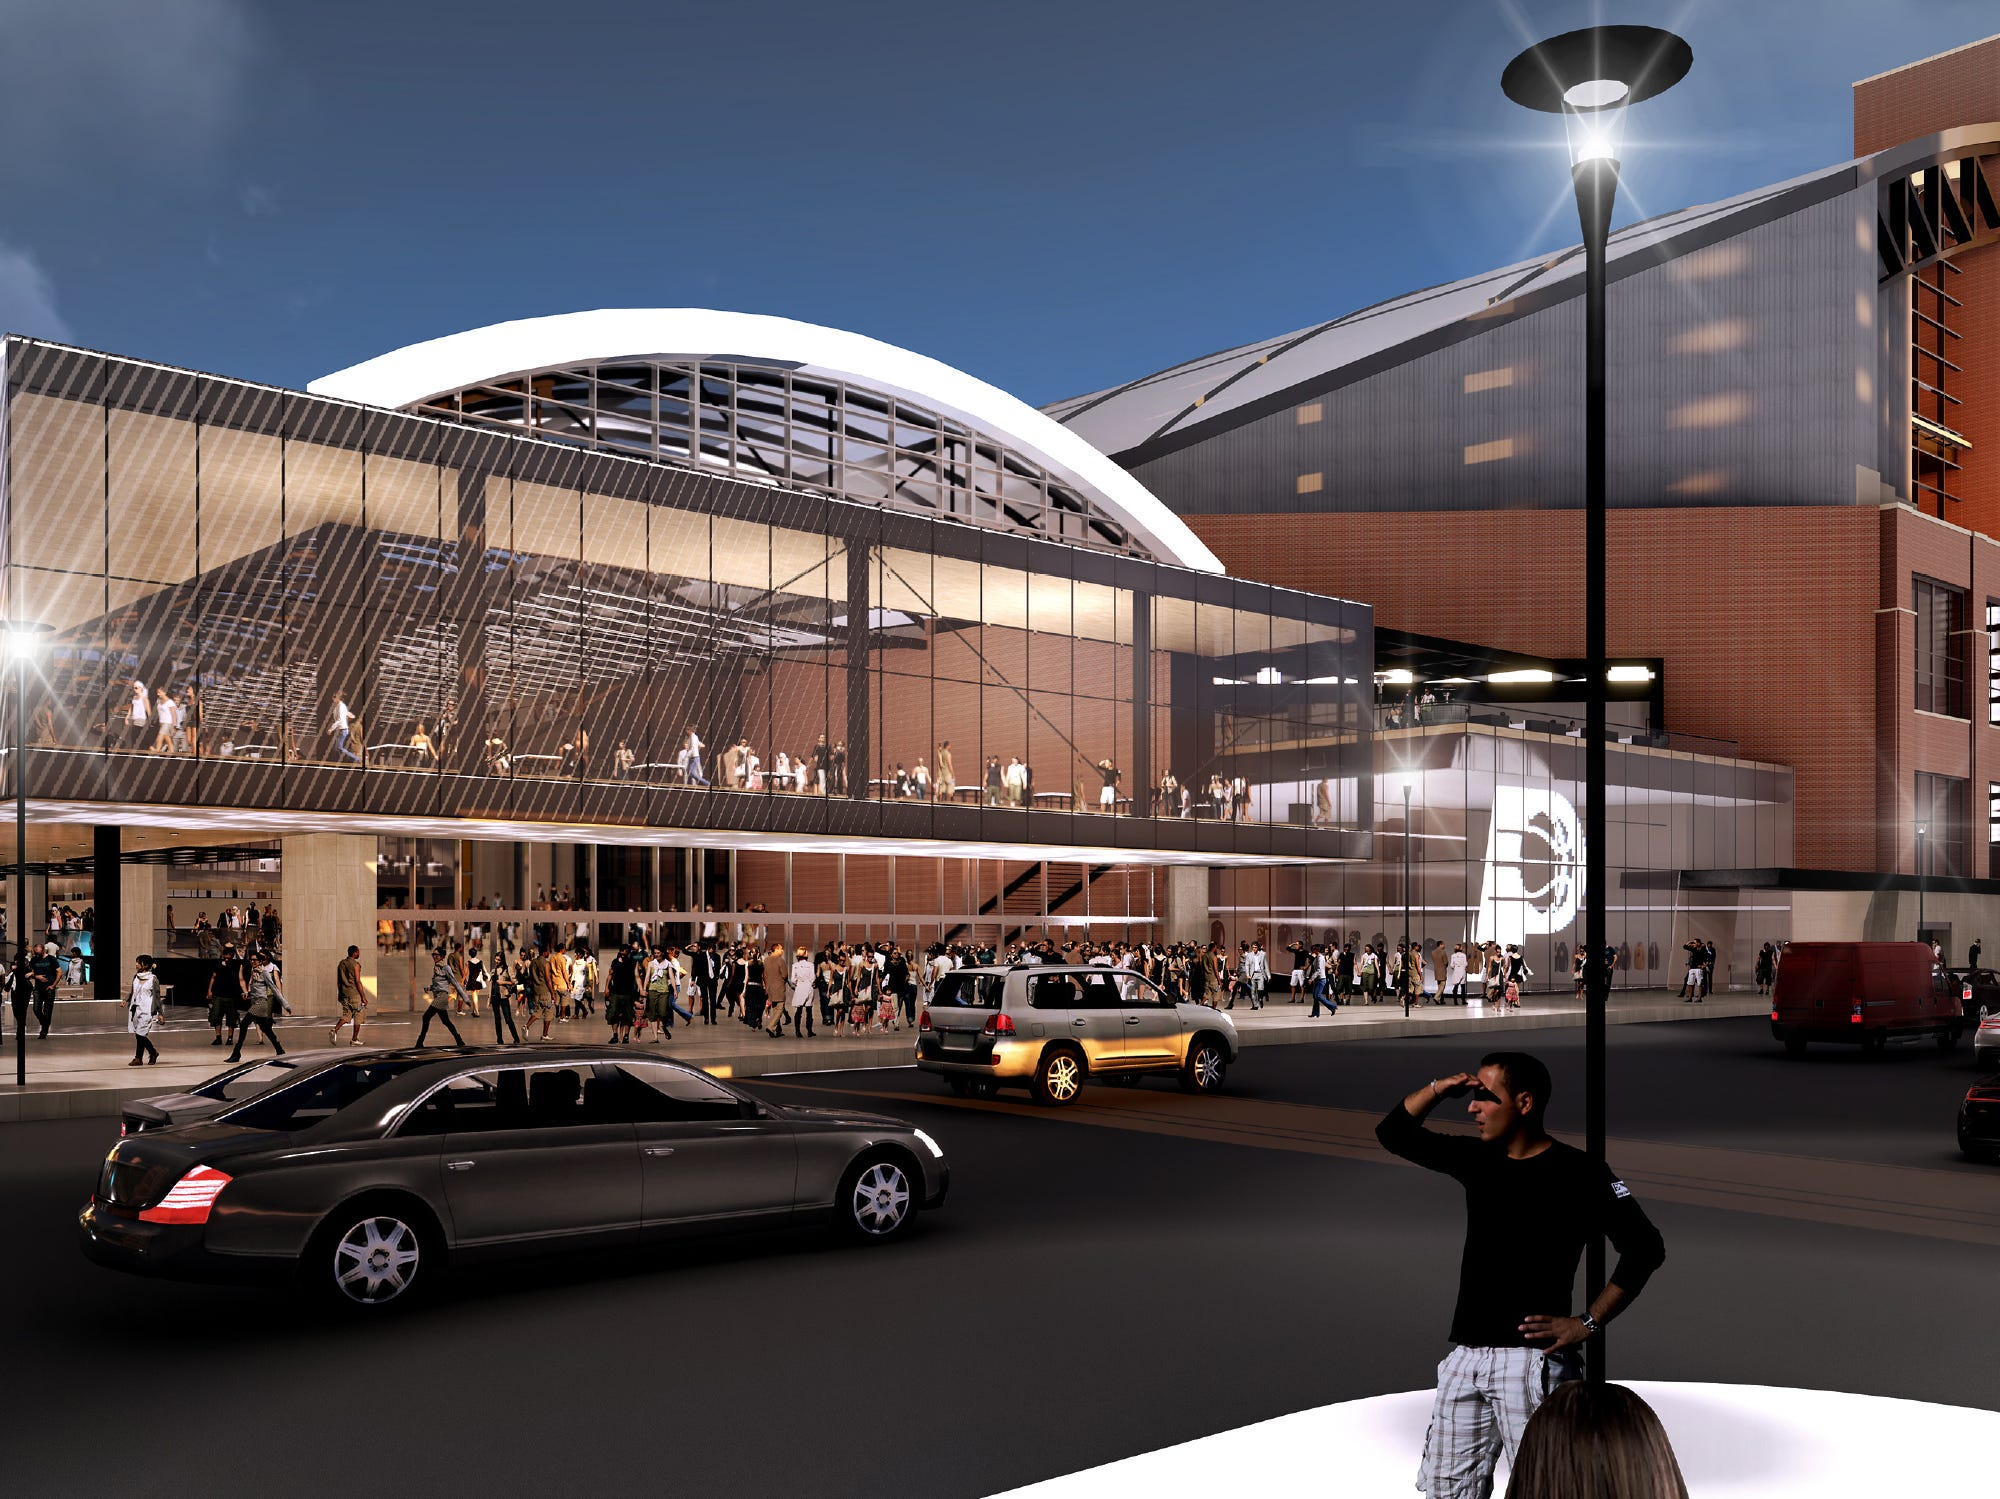 Here's what's in store for Bankers Life Fieldhouse.